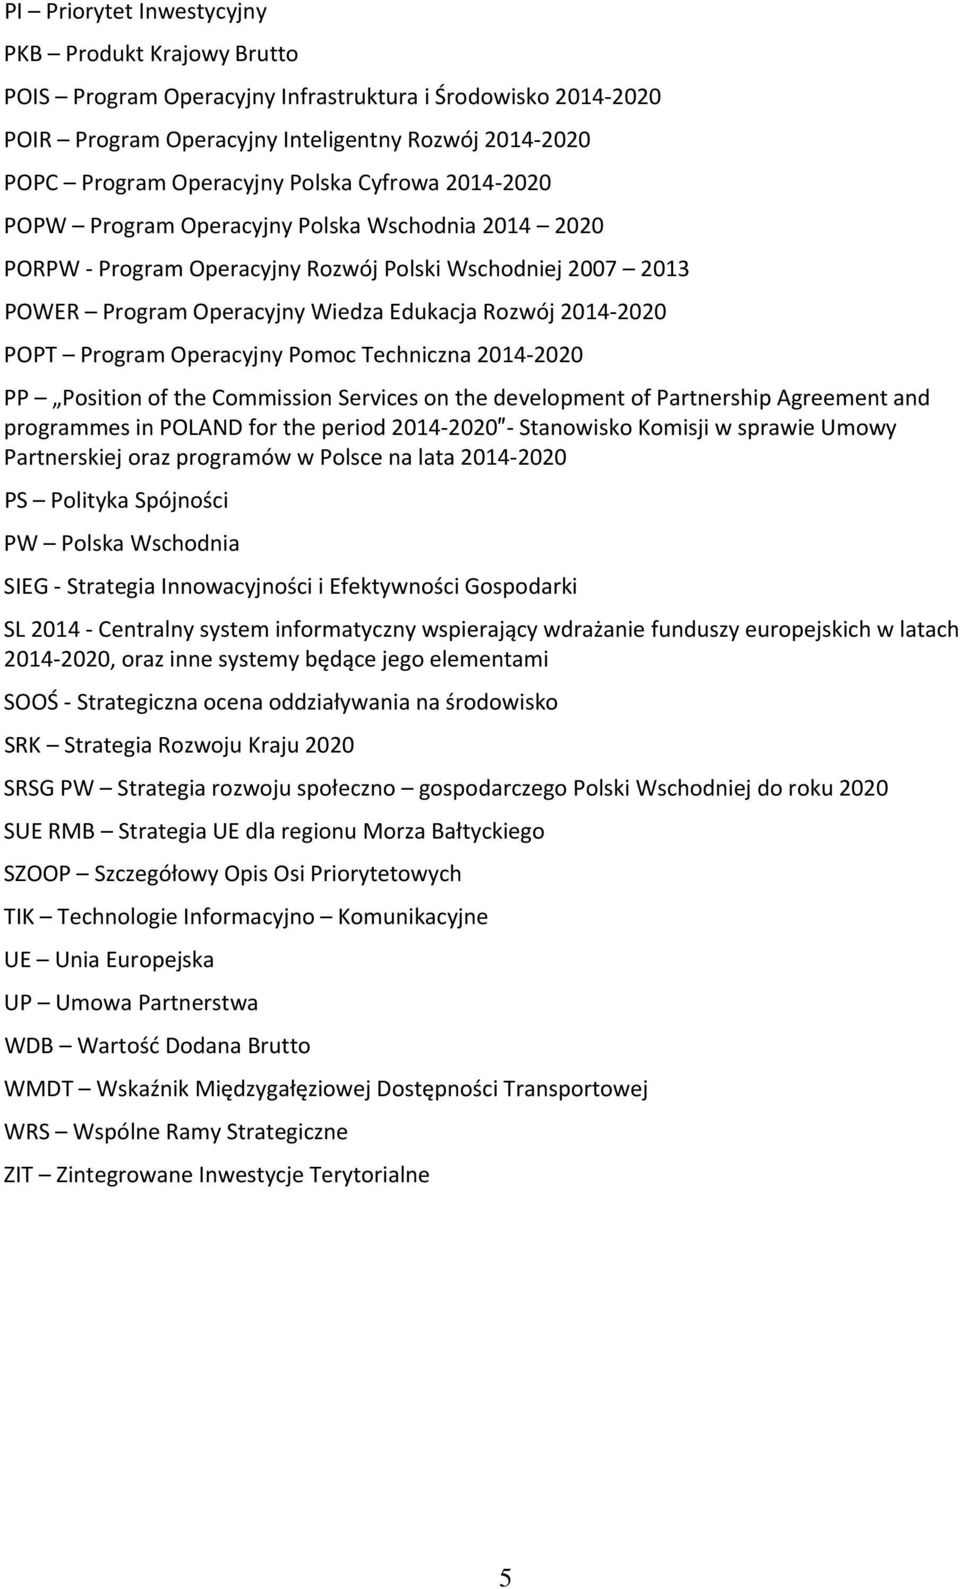 Operacyjny Pomoc Techniczna 2014 2020 PP Position of the Commission Services on the development of Partnership Agreement and programmes in POLAND for the period 2014 2020 Stanowisko Komisji w sprawie